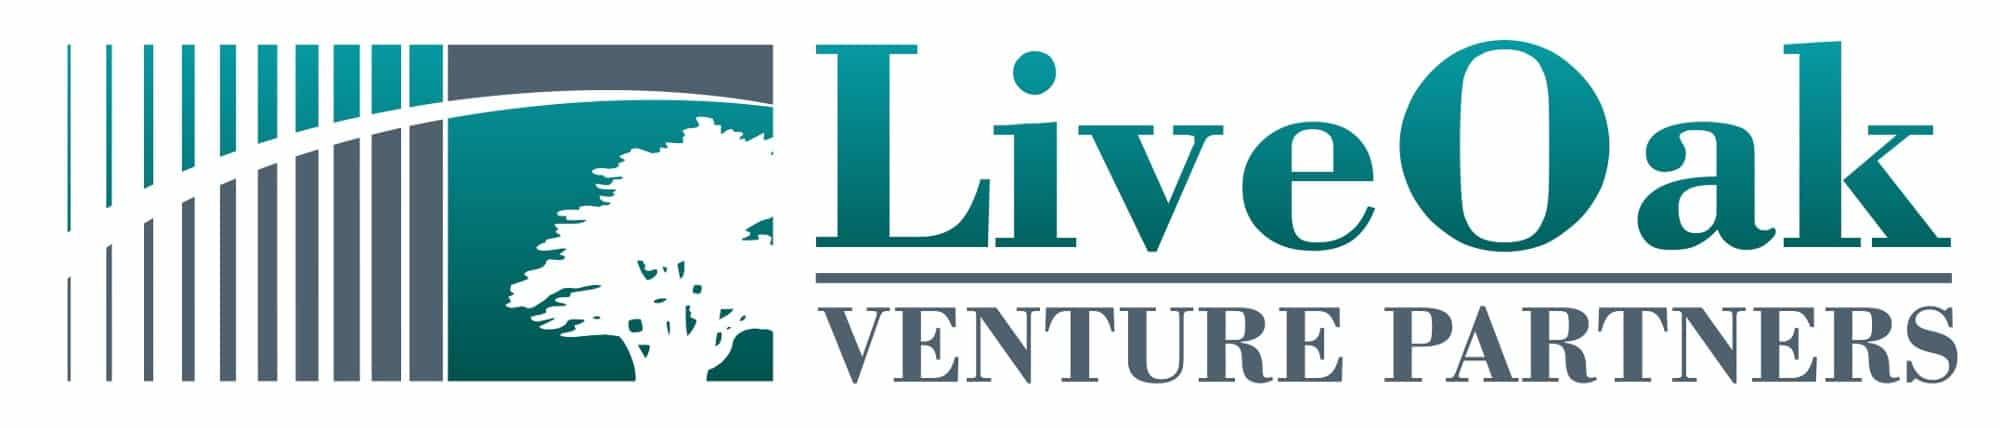 LiveOak Venture Partners | Major VC Firm Austin, Texas